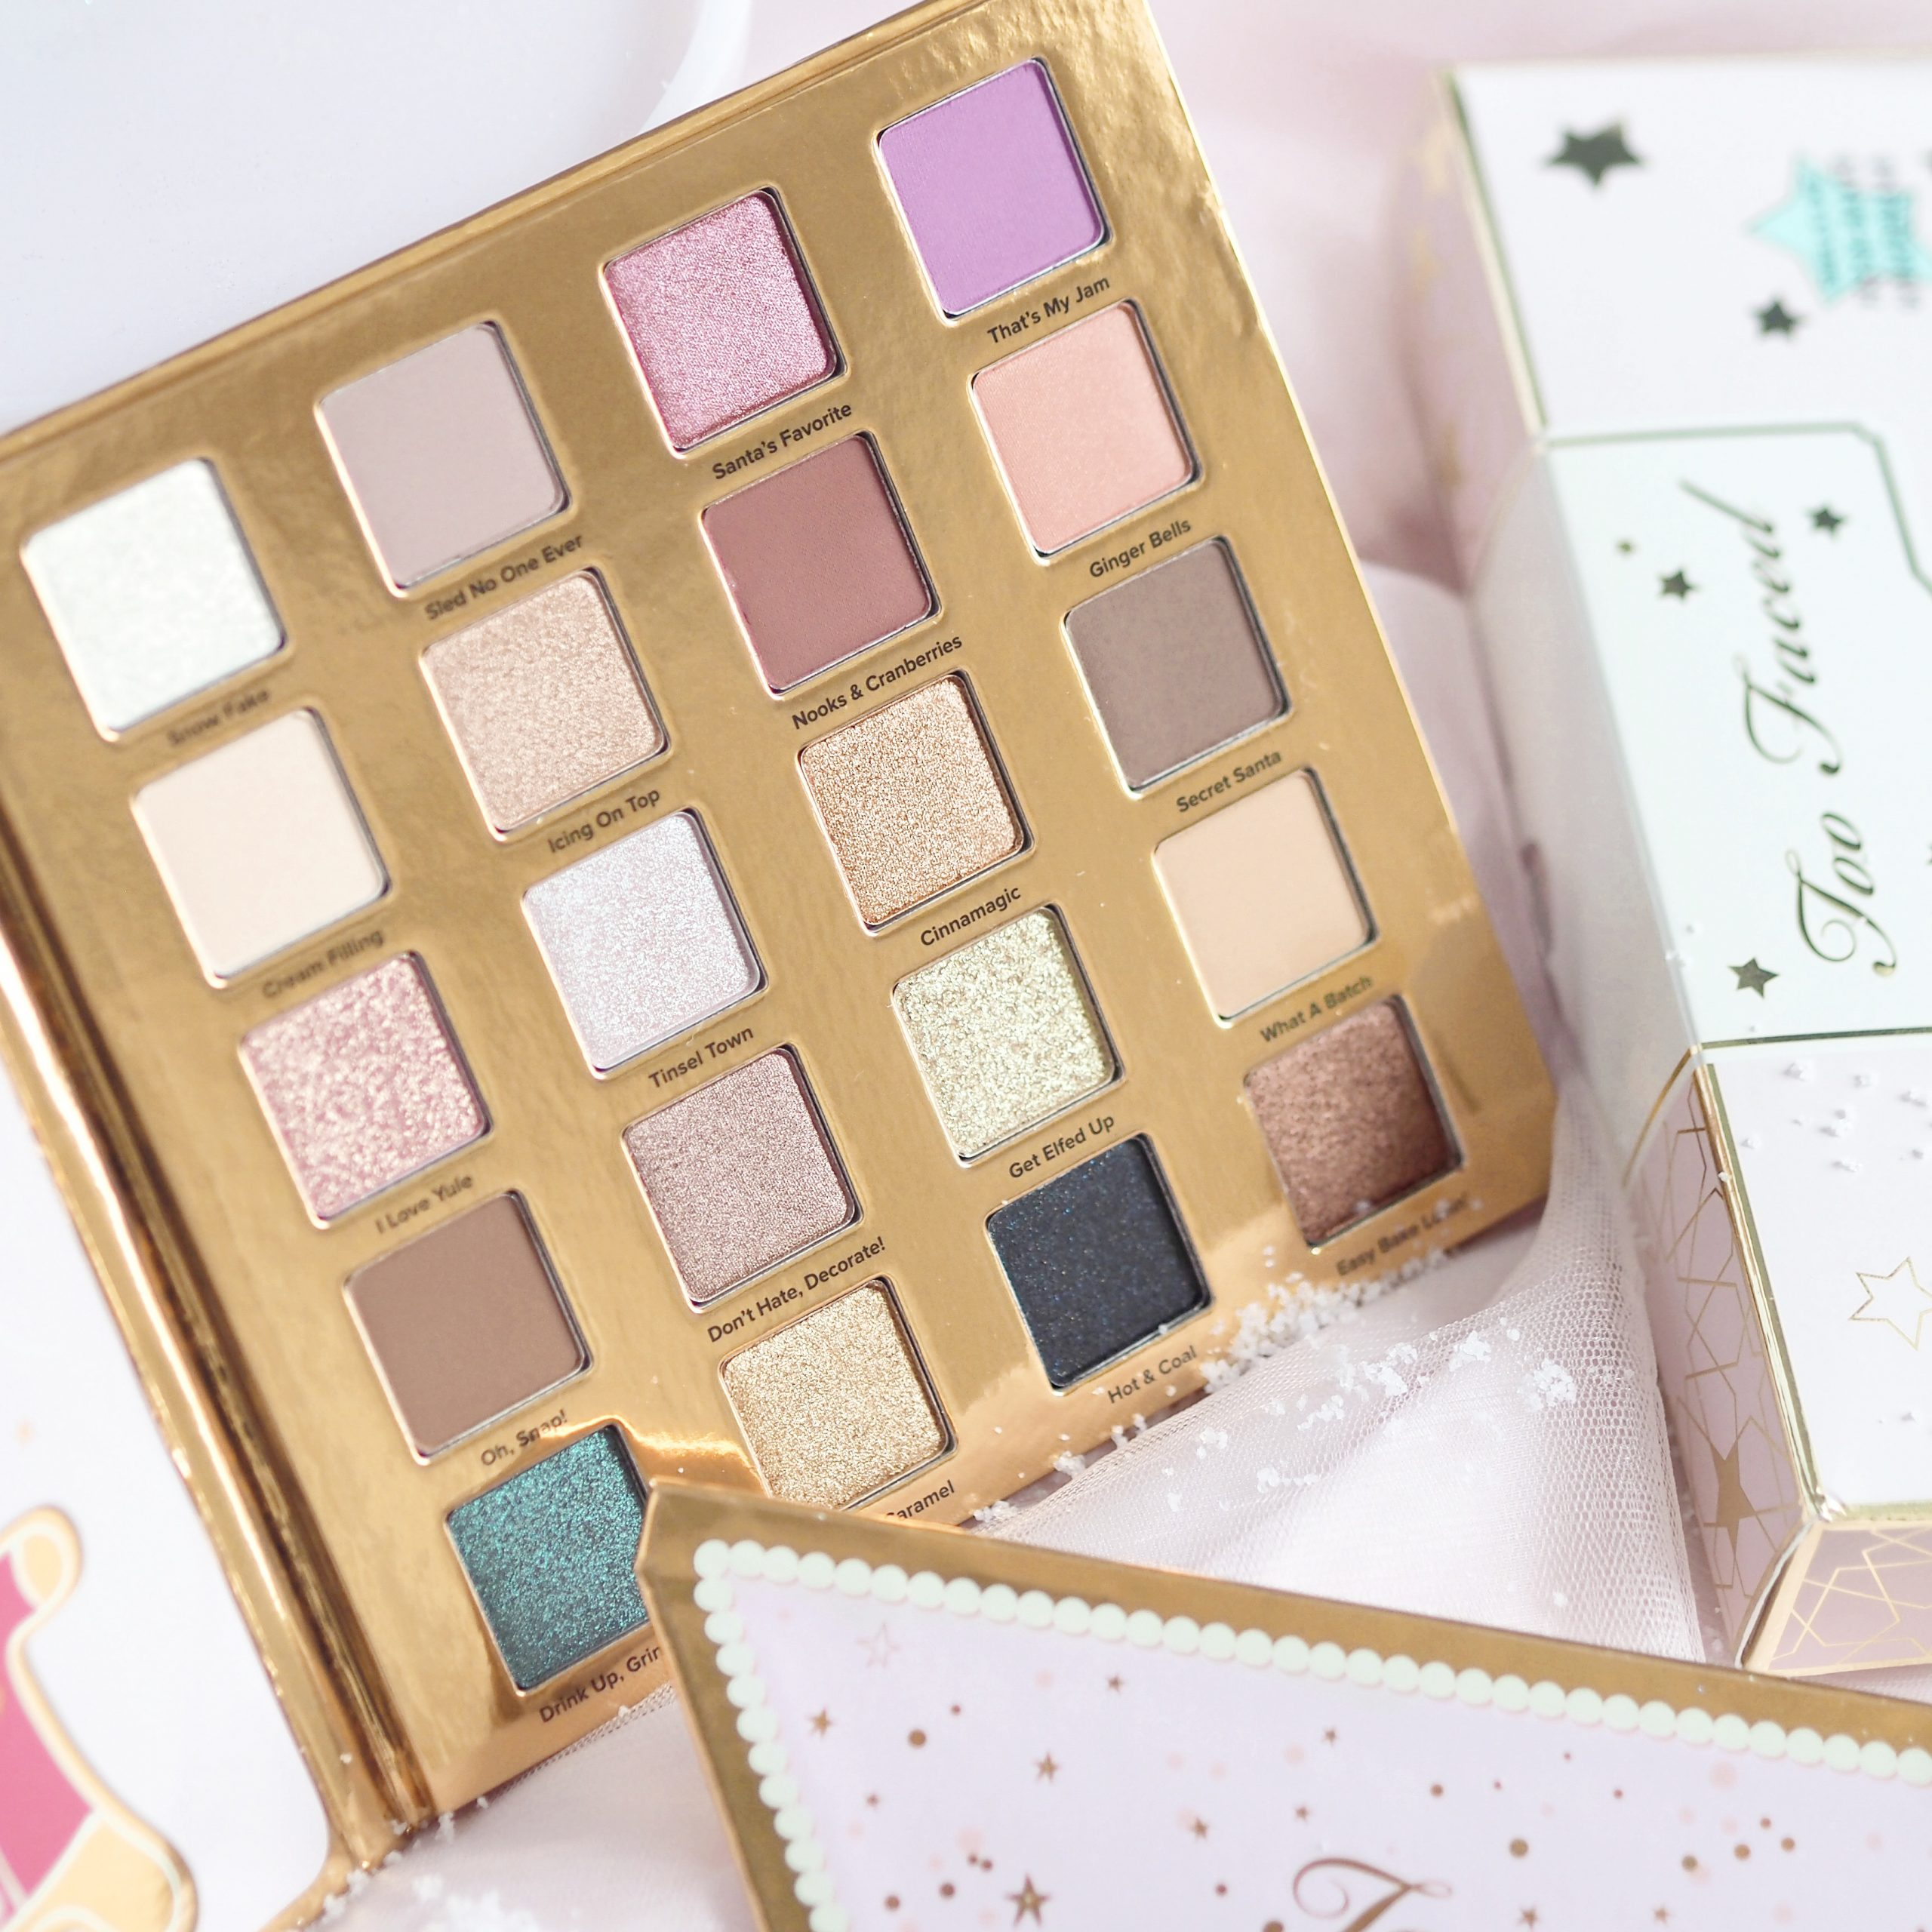 Too Faced Christmas Cookie House Party | Perfectly Pretty Christmas Gift Ideas